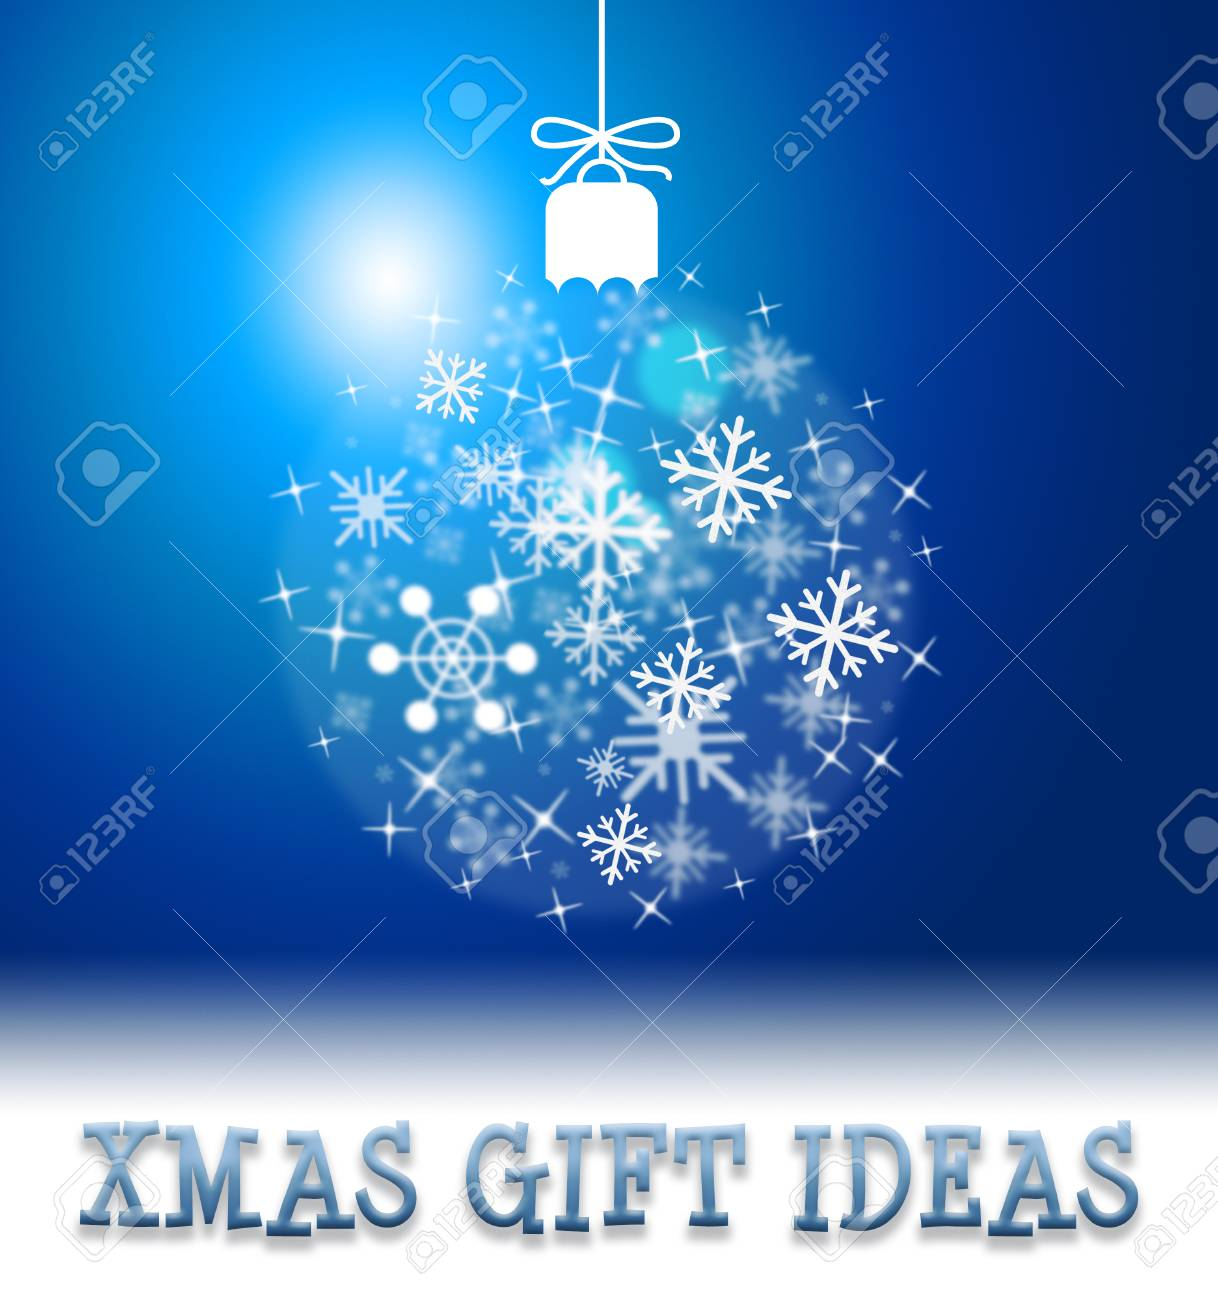 Stock Photo - Xmas Gift Ideas Ball Decoration Shows Christmas Present Suggestions